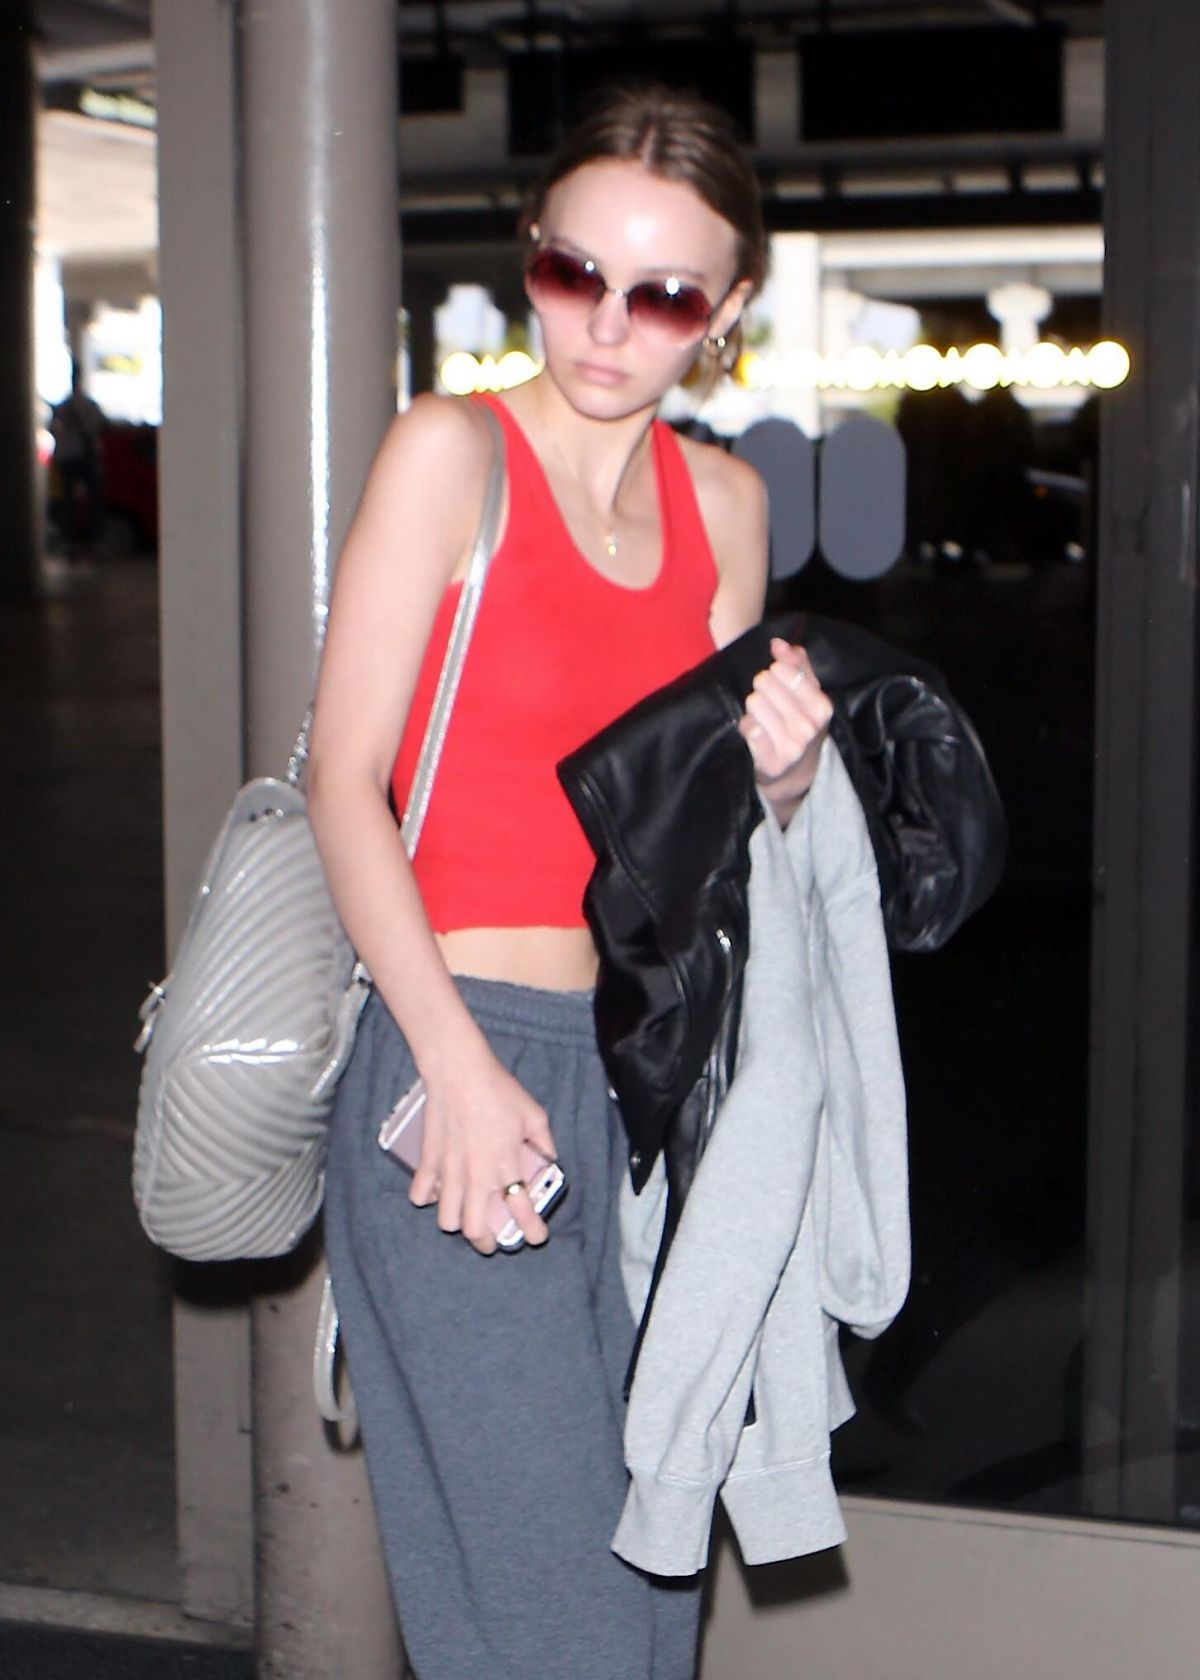 LILY-ROSE DEPP at Los Angeles International Airport 04/10/2017